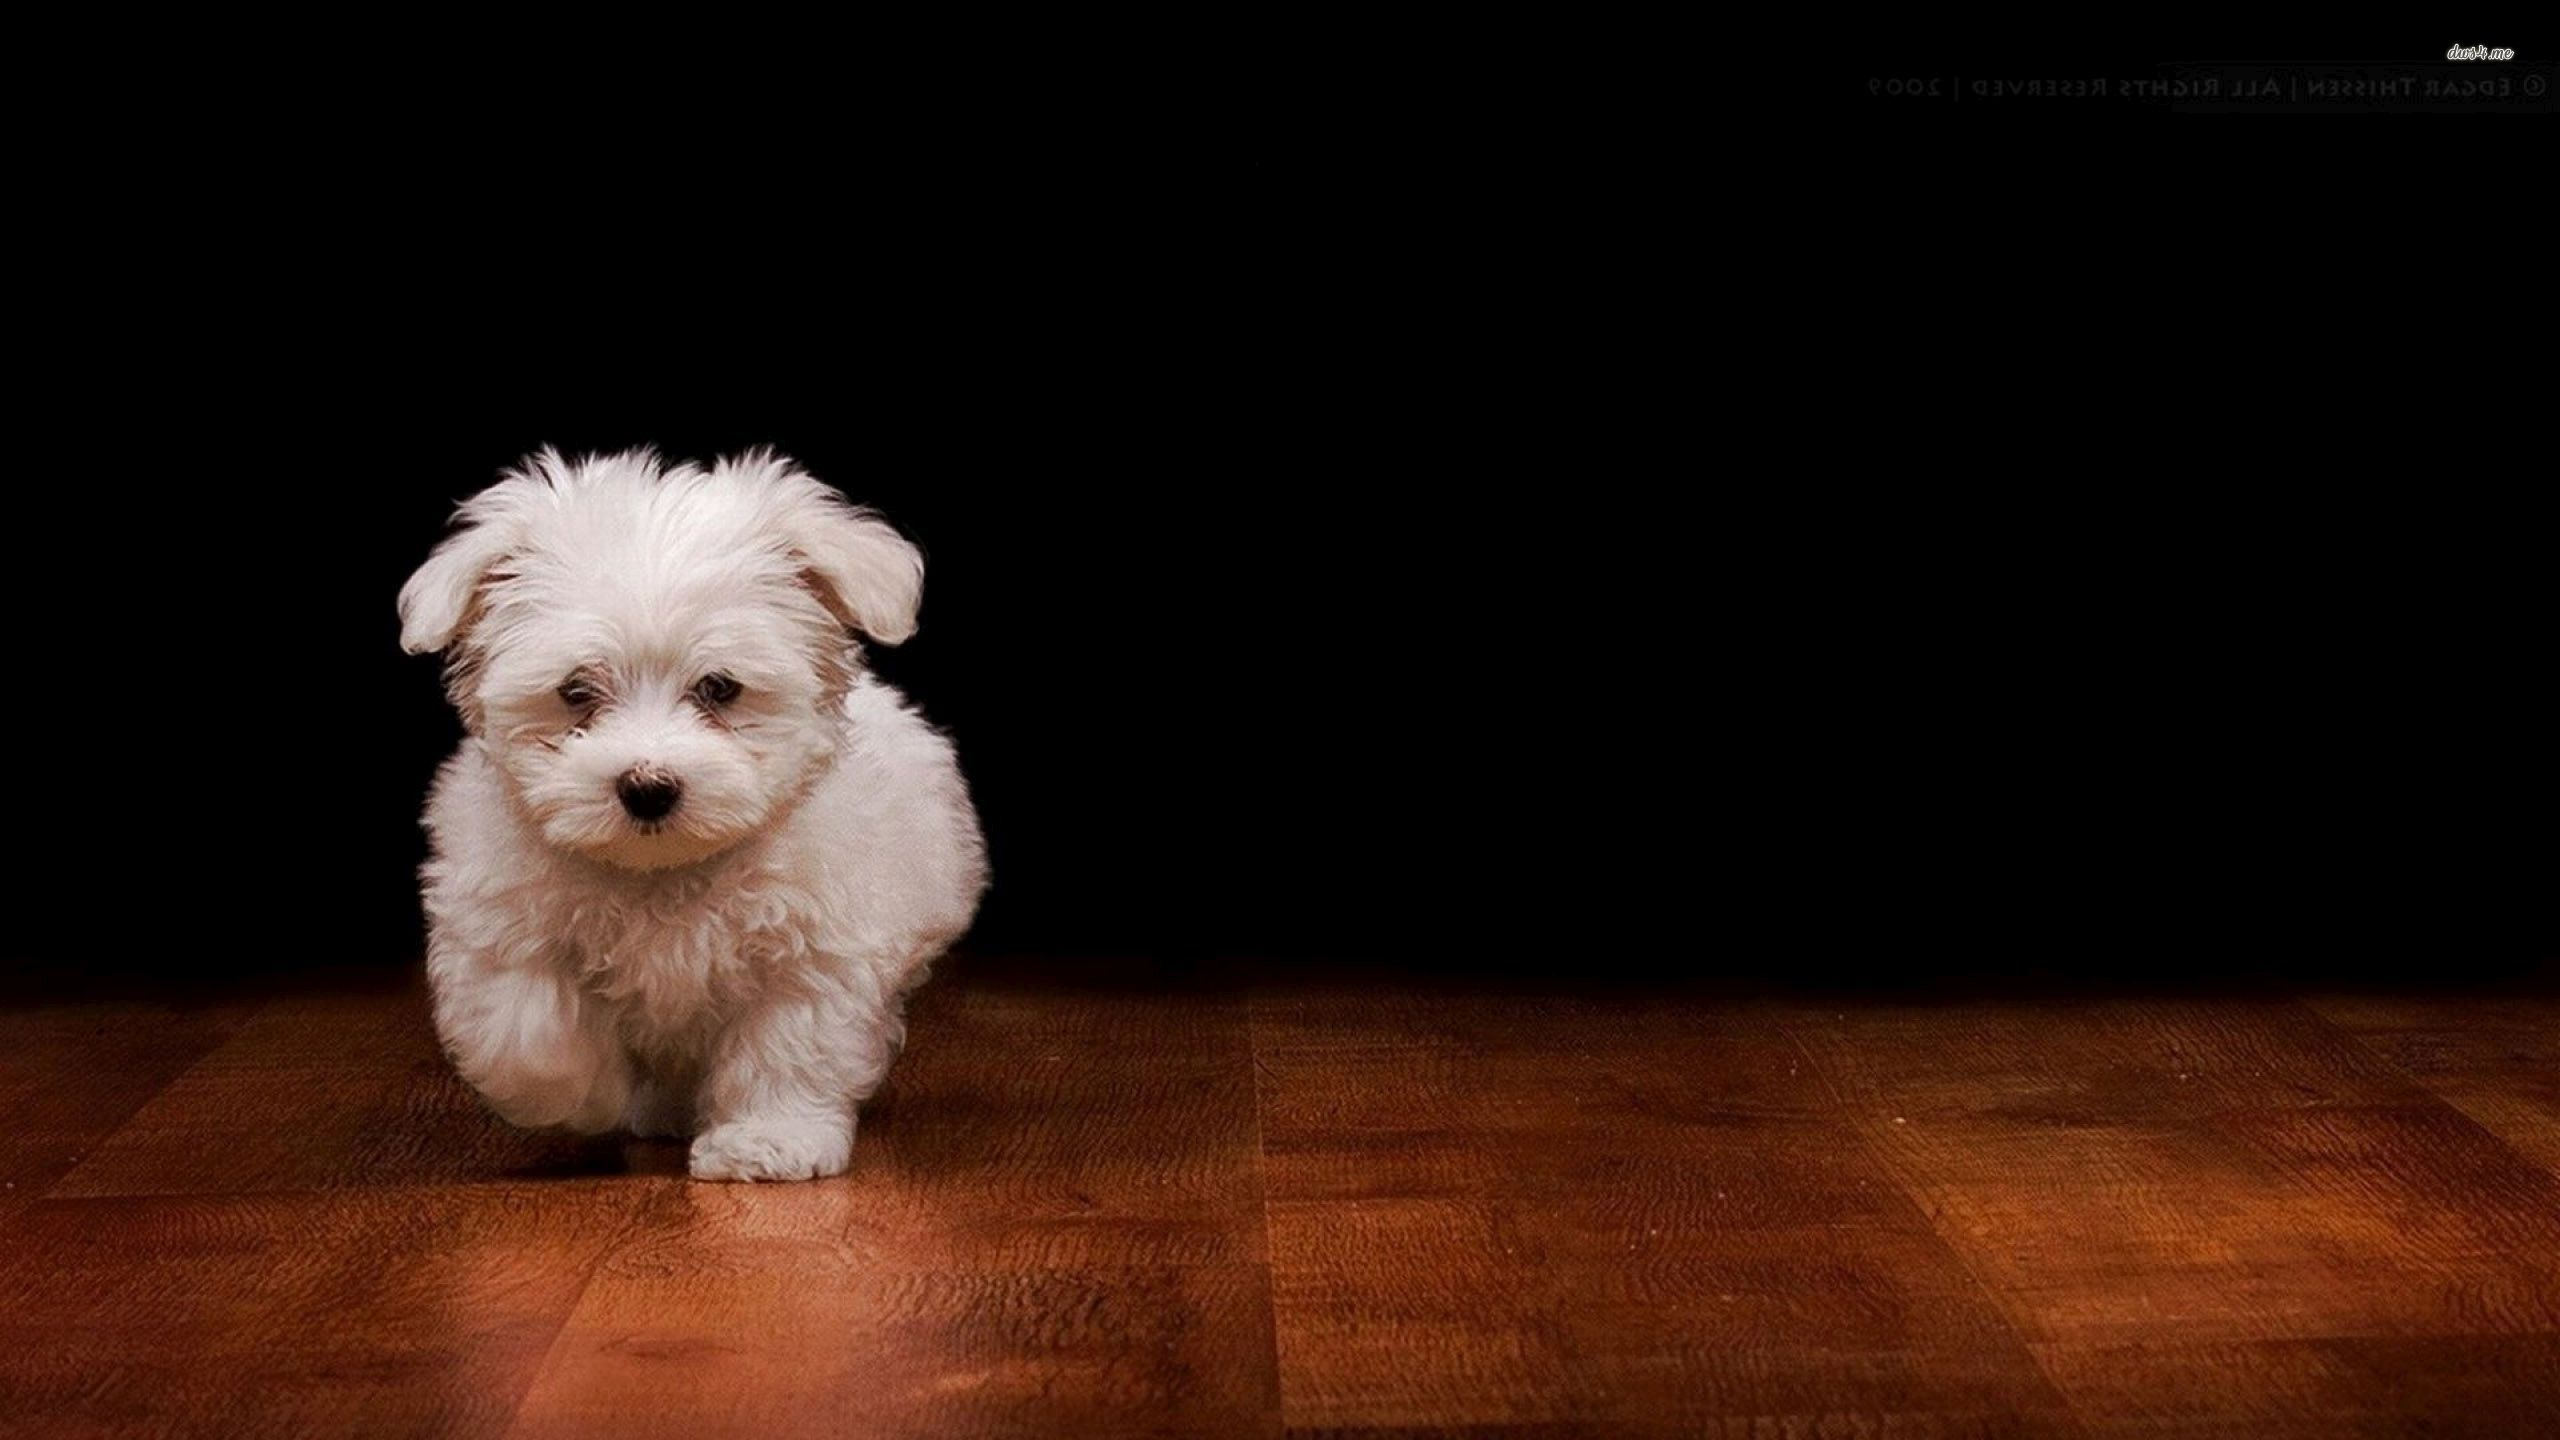 Free Puppy Dog Wallpaper Android Apps On Google Play 2560x1440